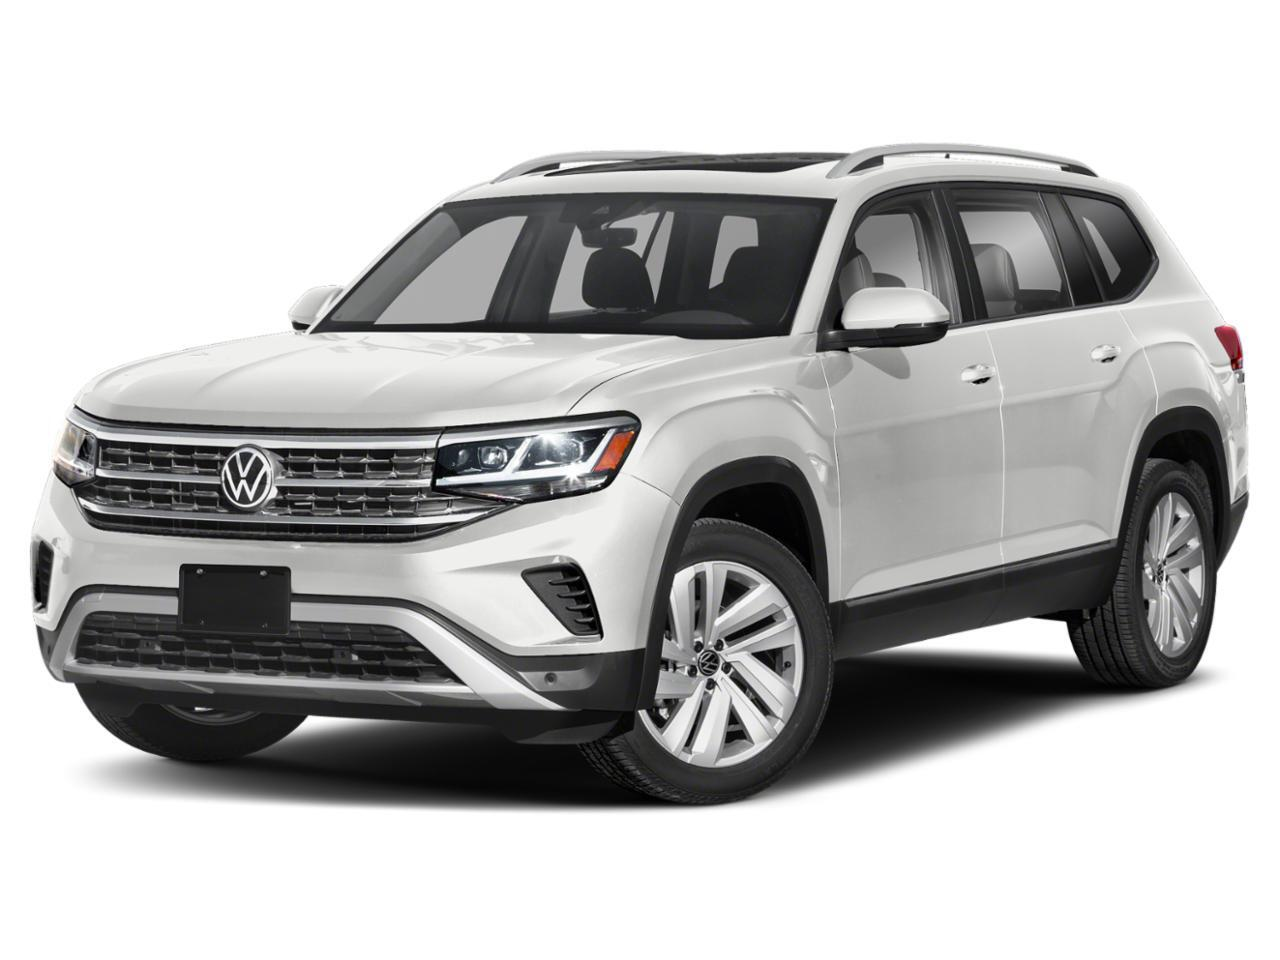 2021 Volkswagen ATLAS 3.6 V6 SE W/ TECHNOLOGY